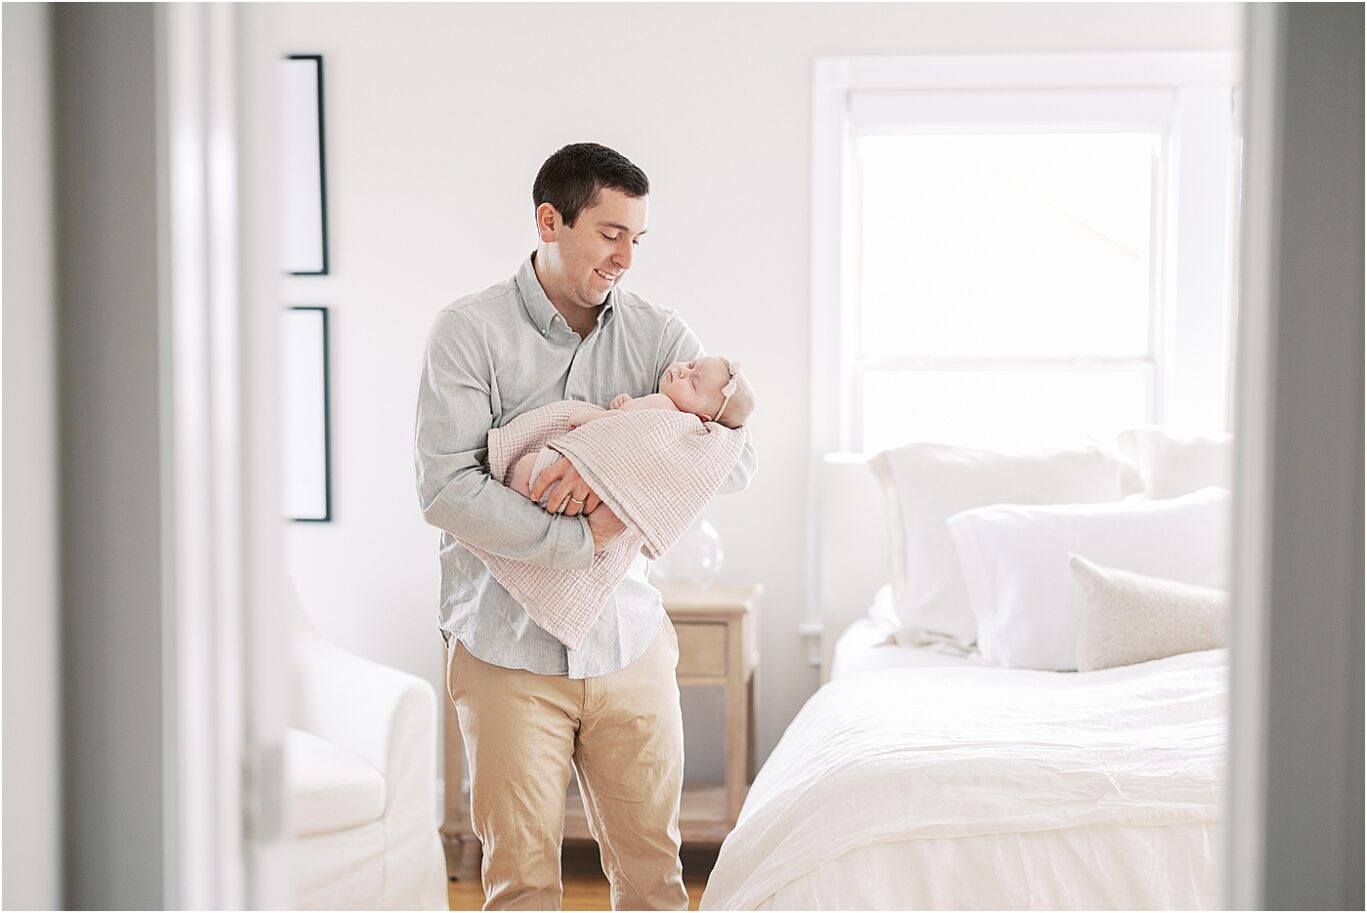 Lifestyle newborn session with Dad holding his baby girl. Photo by Lindsay Konopa Photography.